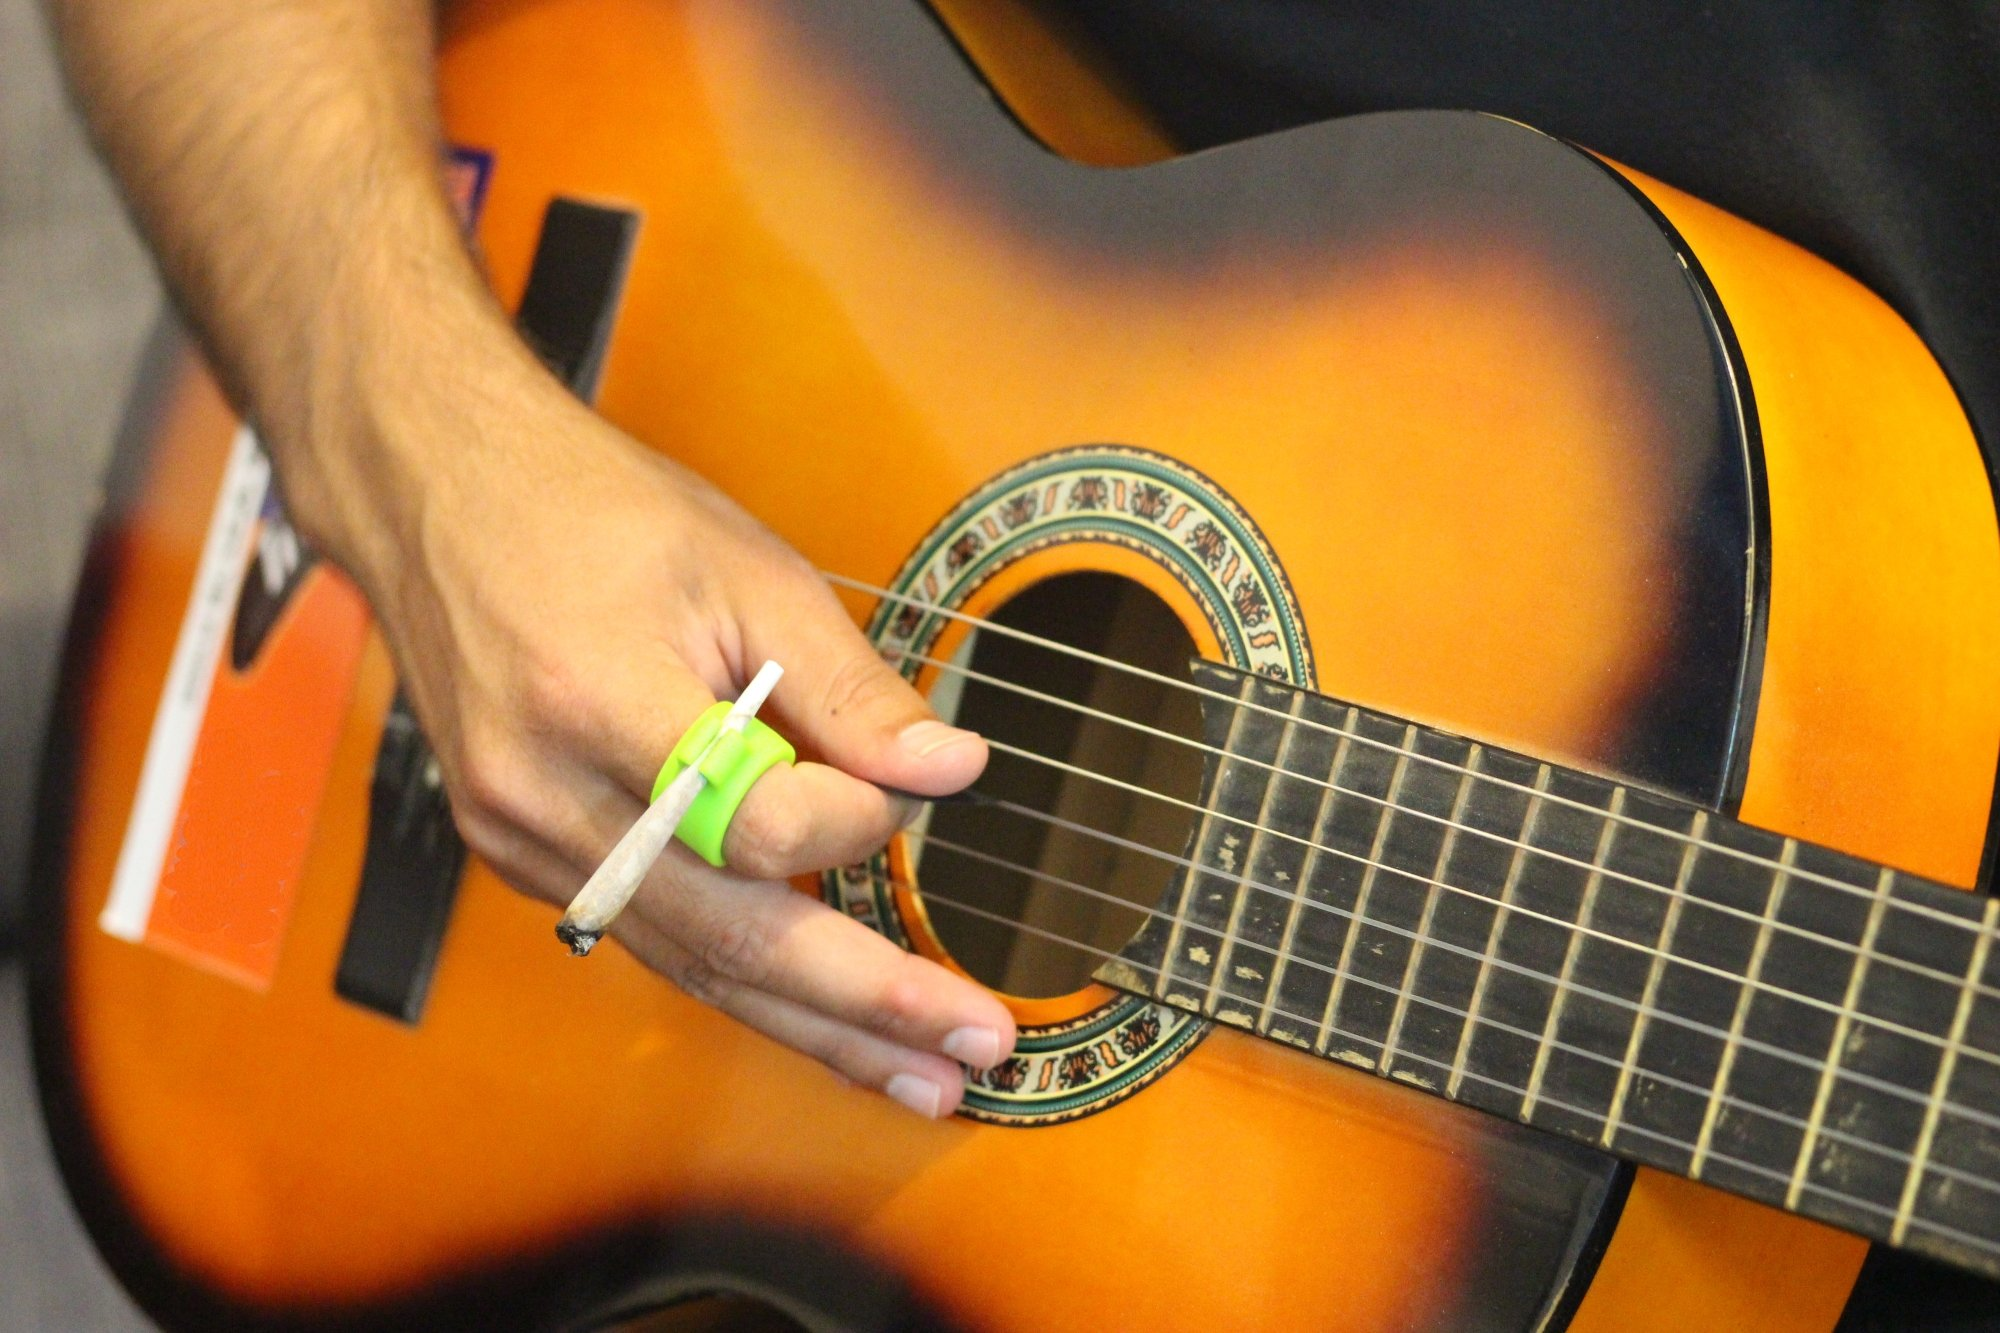 smOky | Smoking Ring: Hands Free Cigarette Holder For Nicotine Free Fingers | Adaptable Stretchy And Durable Silicone Material, Ideal Gadget For Console & PC Gamers, Guitar Players And Drivers